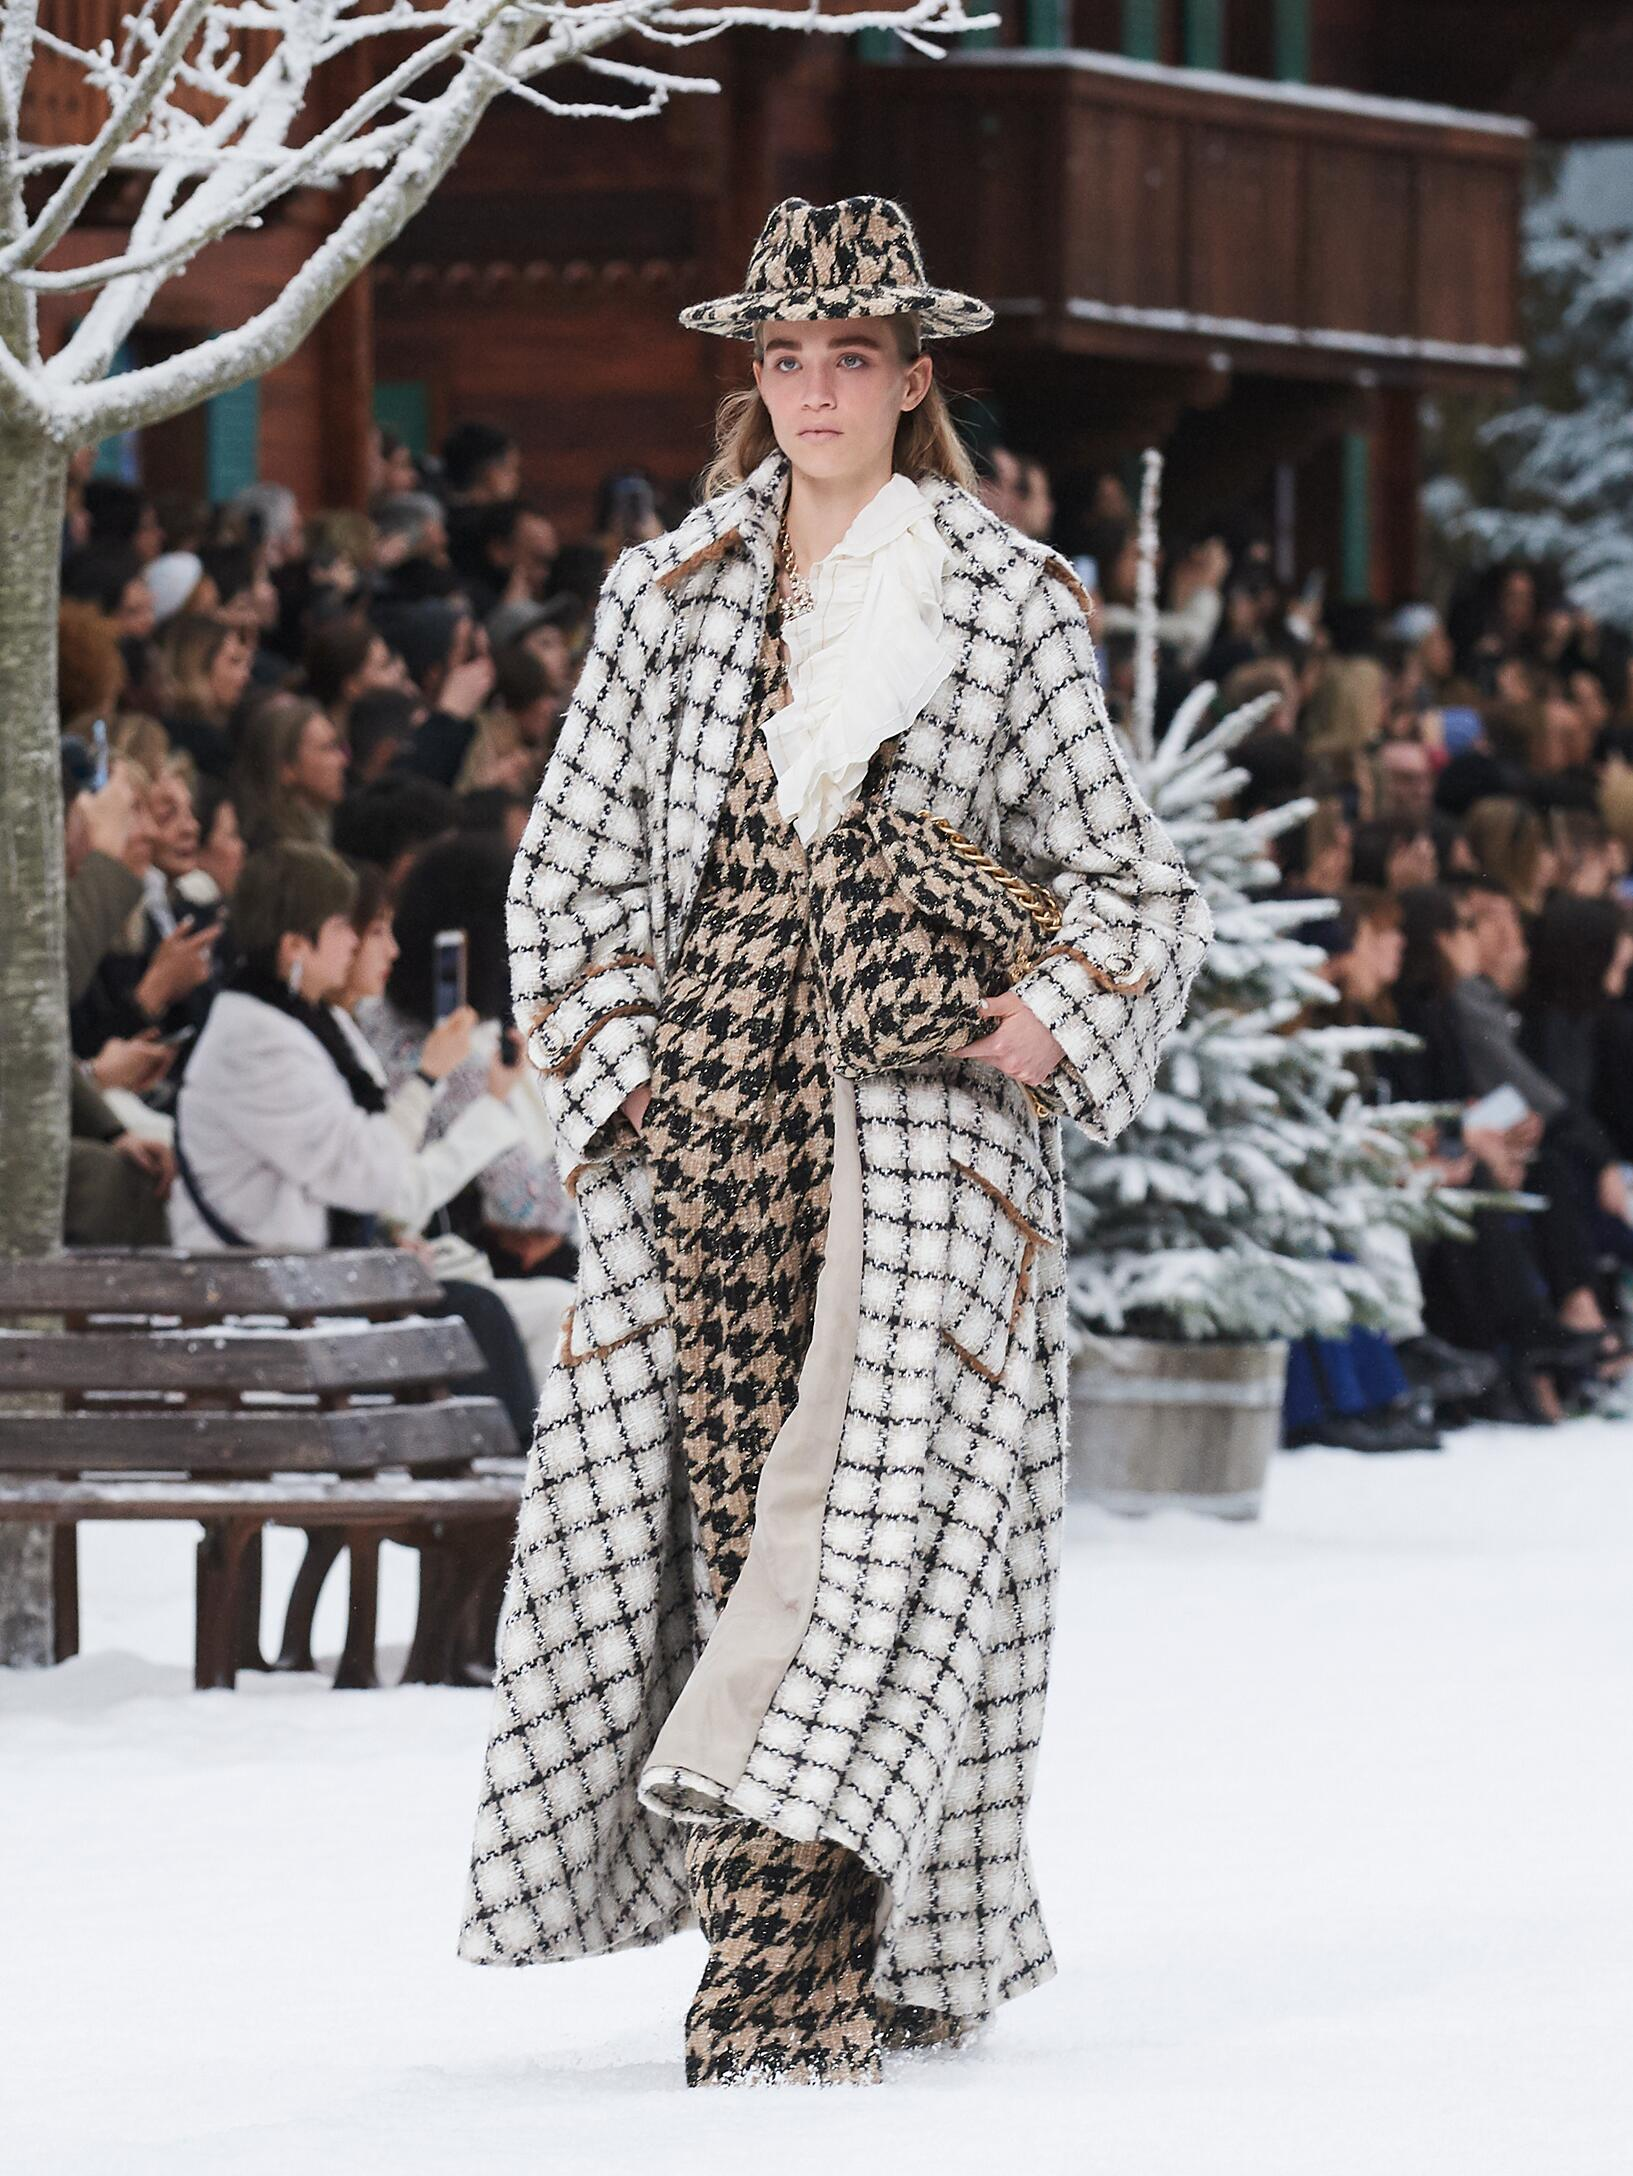 FW 2019-20 Chanel Fashion Show